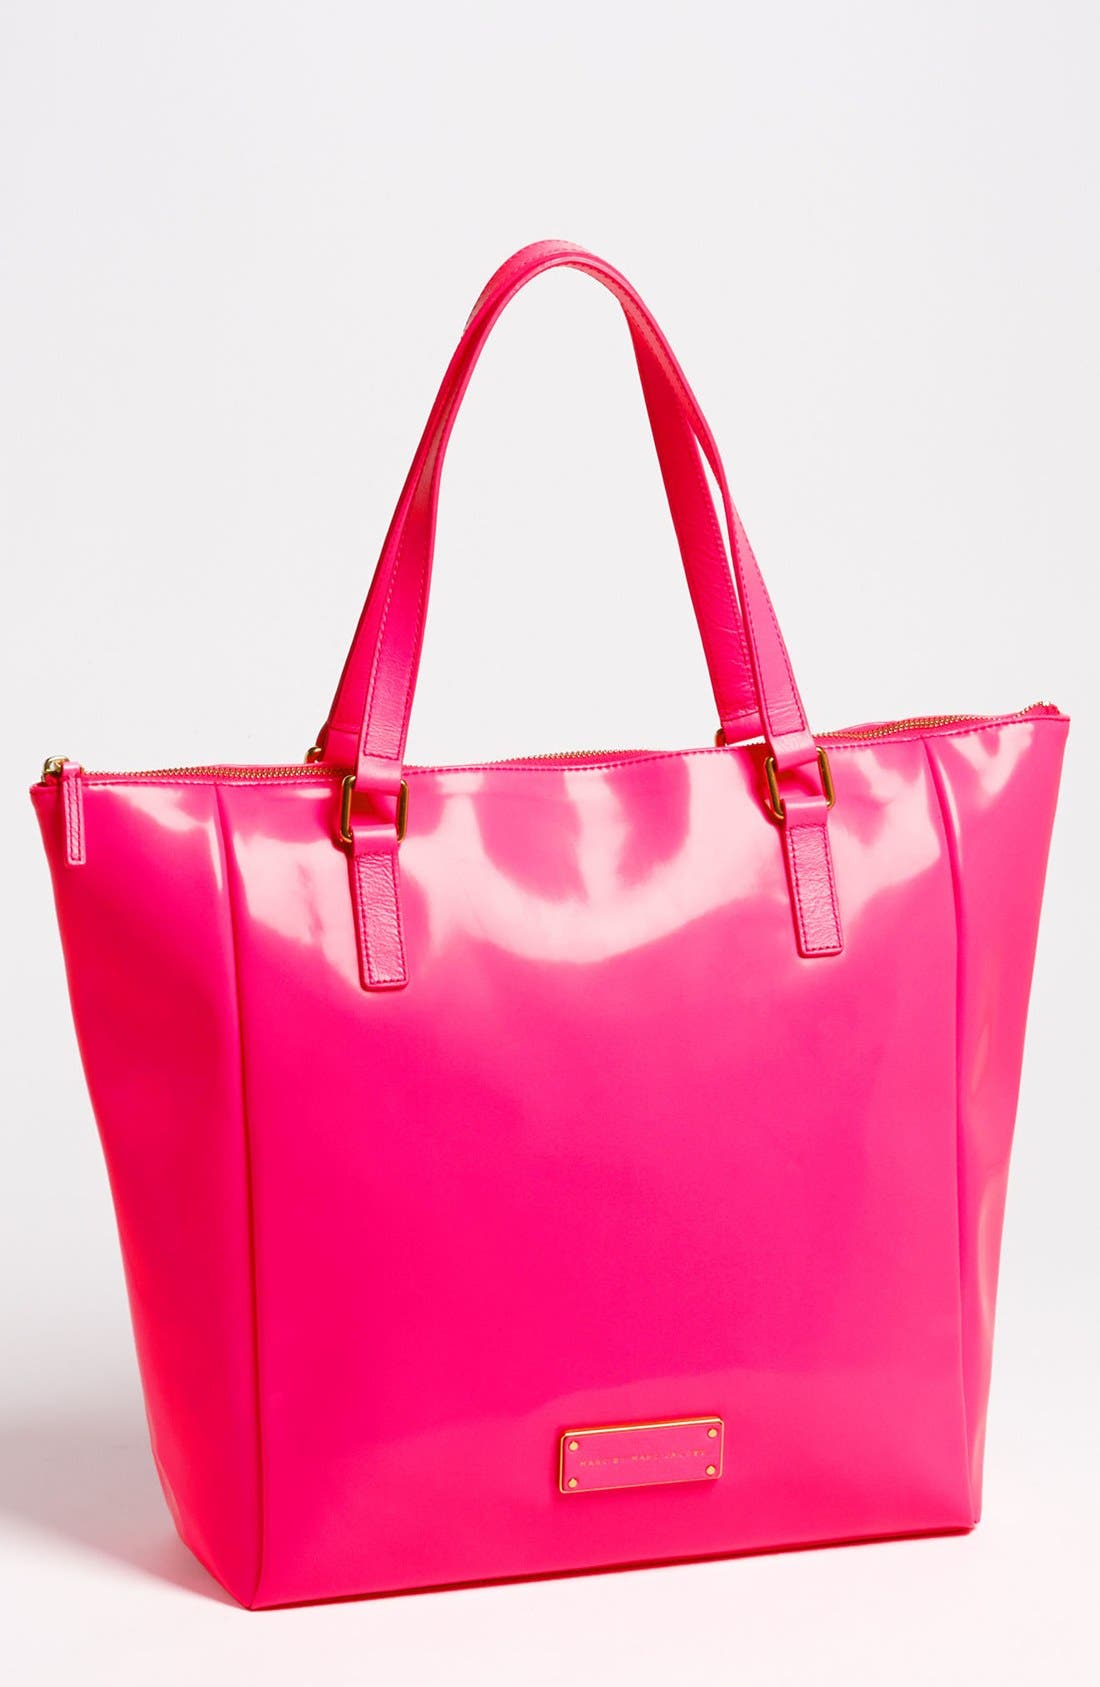 Alternate Image 1 Selected - MARC BY MARC JACOBS 'Take Me' Tote